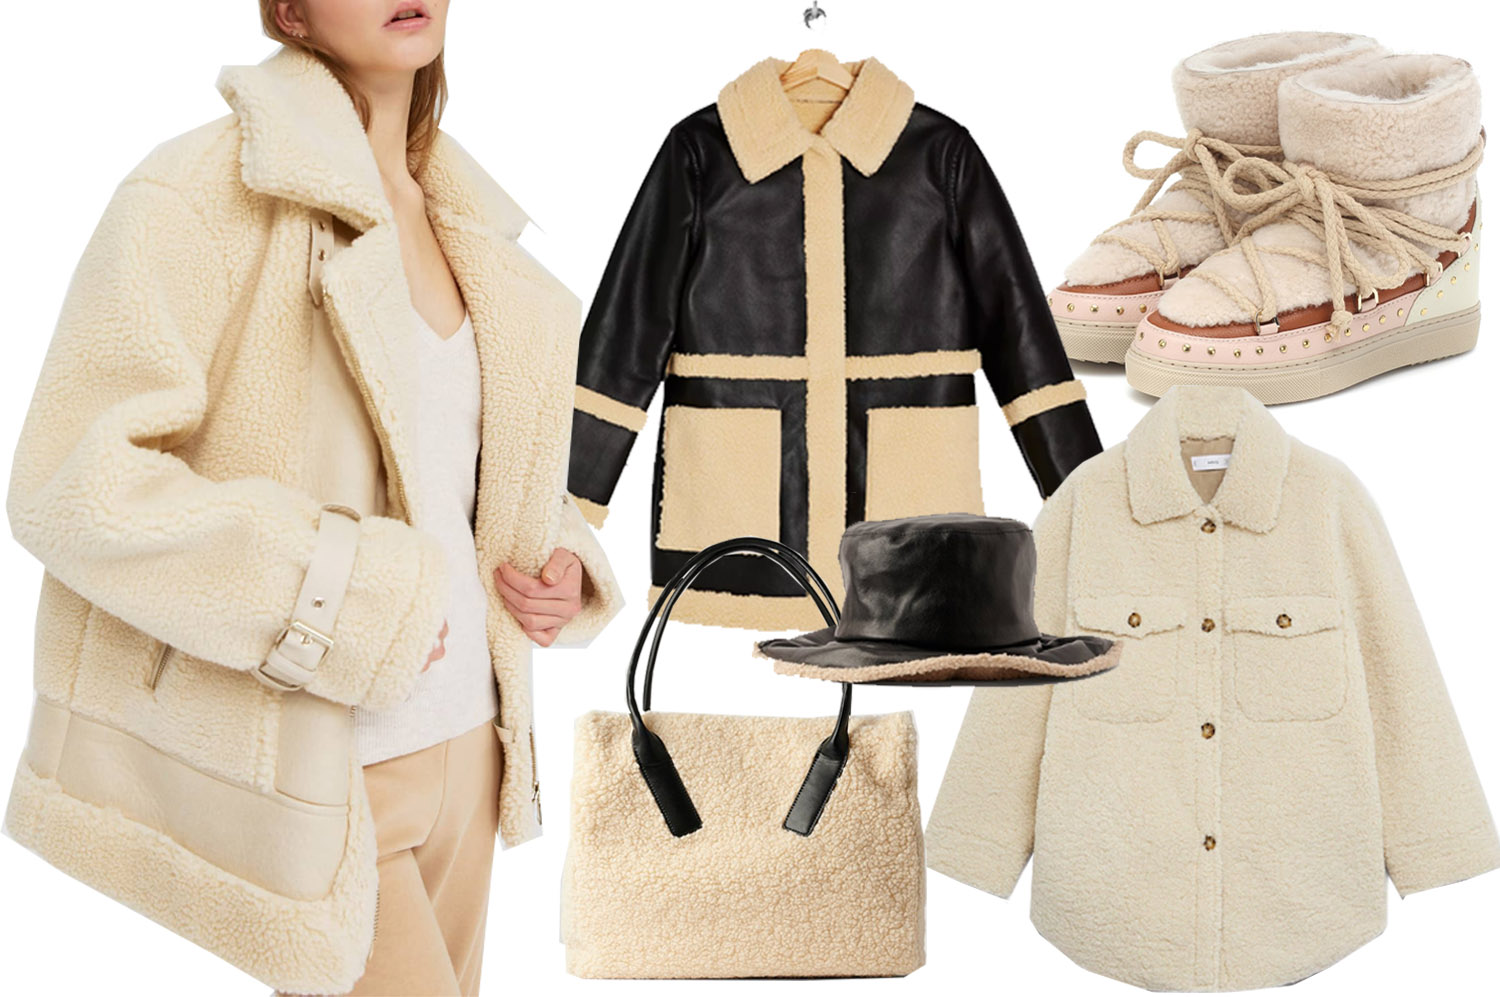 21 Shearling Pieces to Add to Your Winter Wardrobe